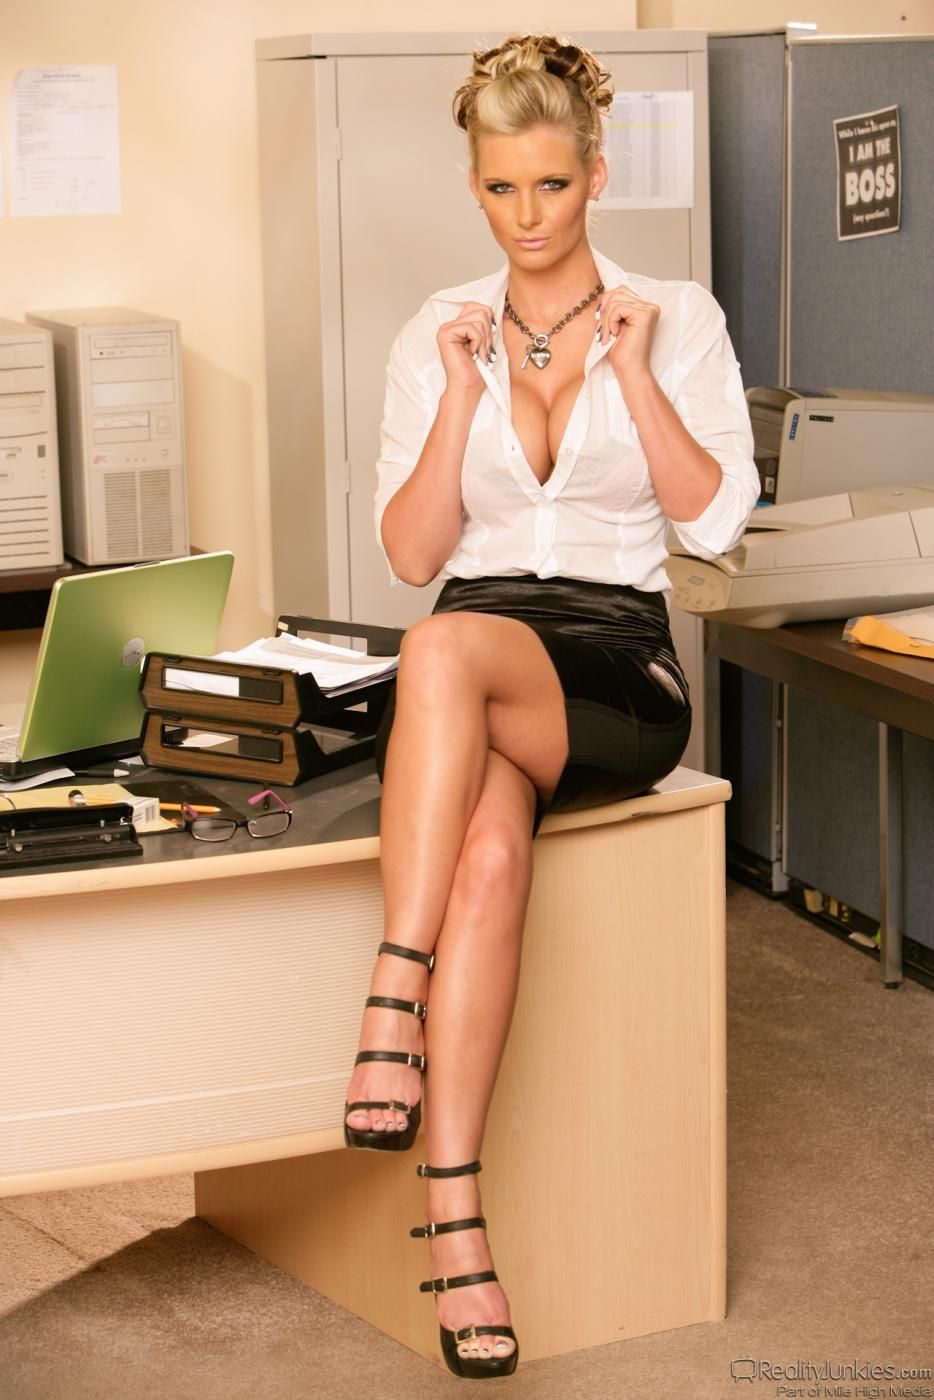 Upskirt black woman desk